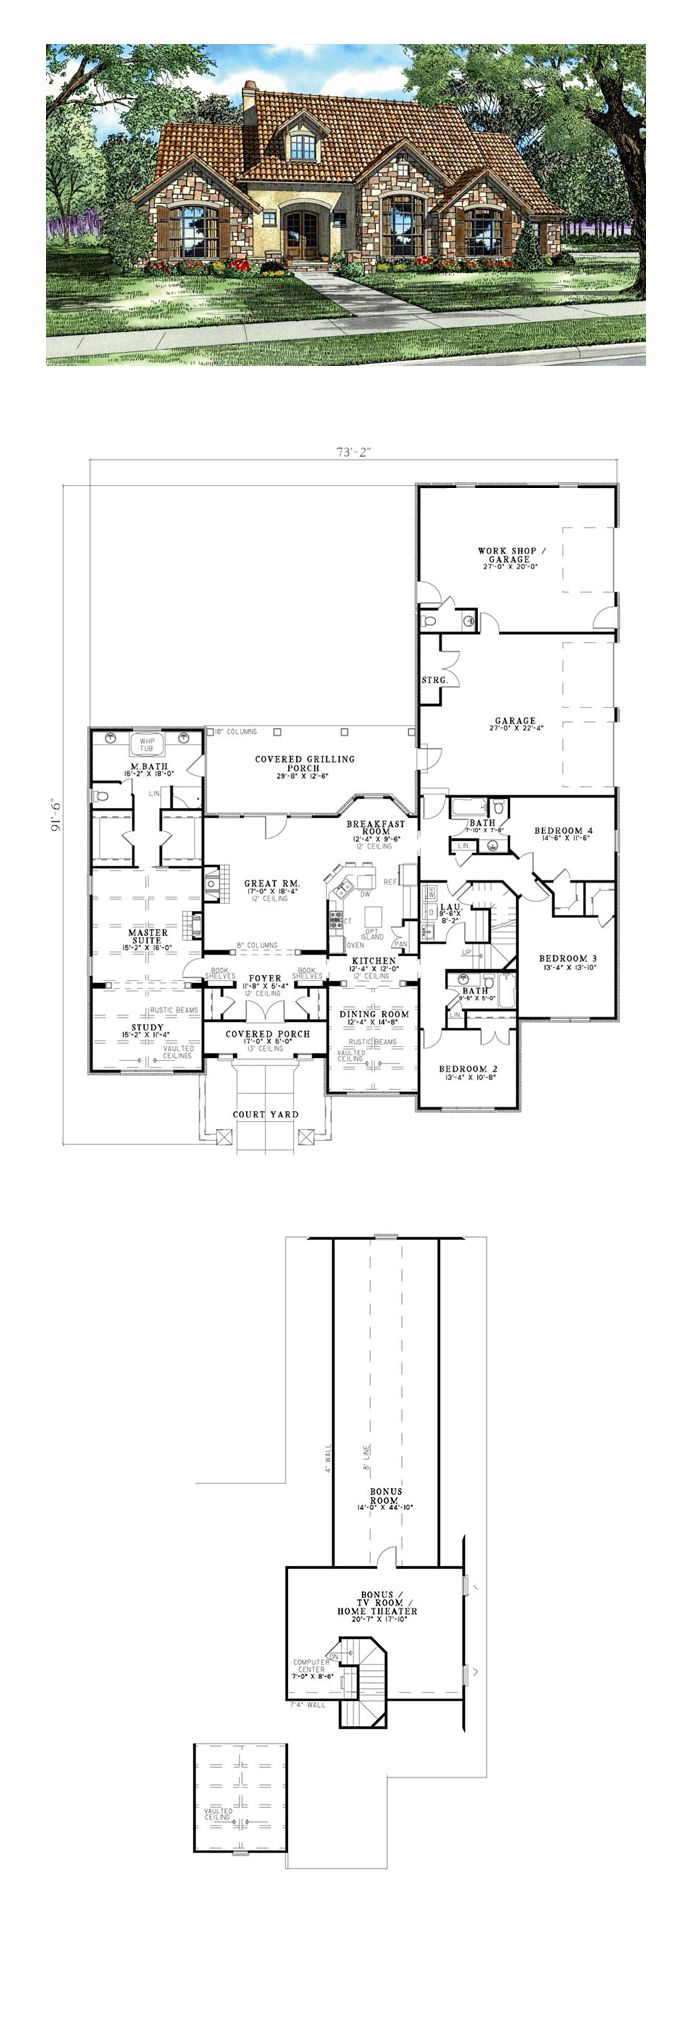 Tuscan house pinterest plans and floor luxury plan Tuscan home floor plans